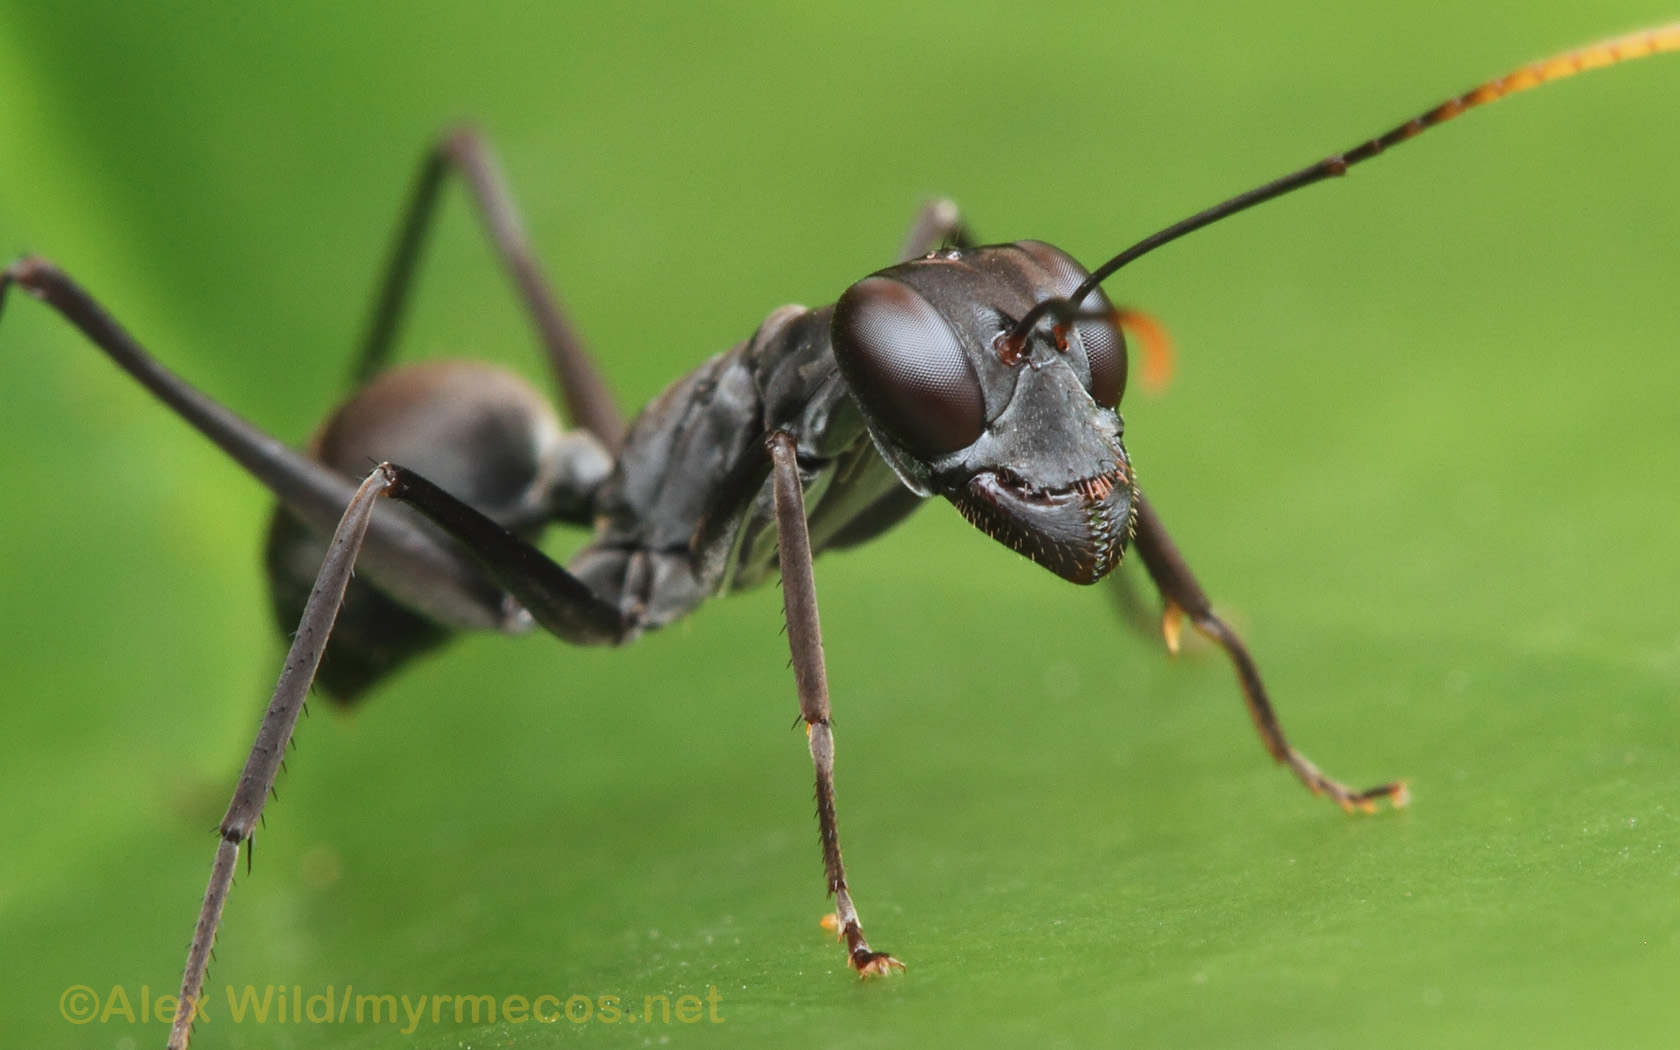 Insect Wallpapers – MYRMECOS